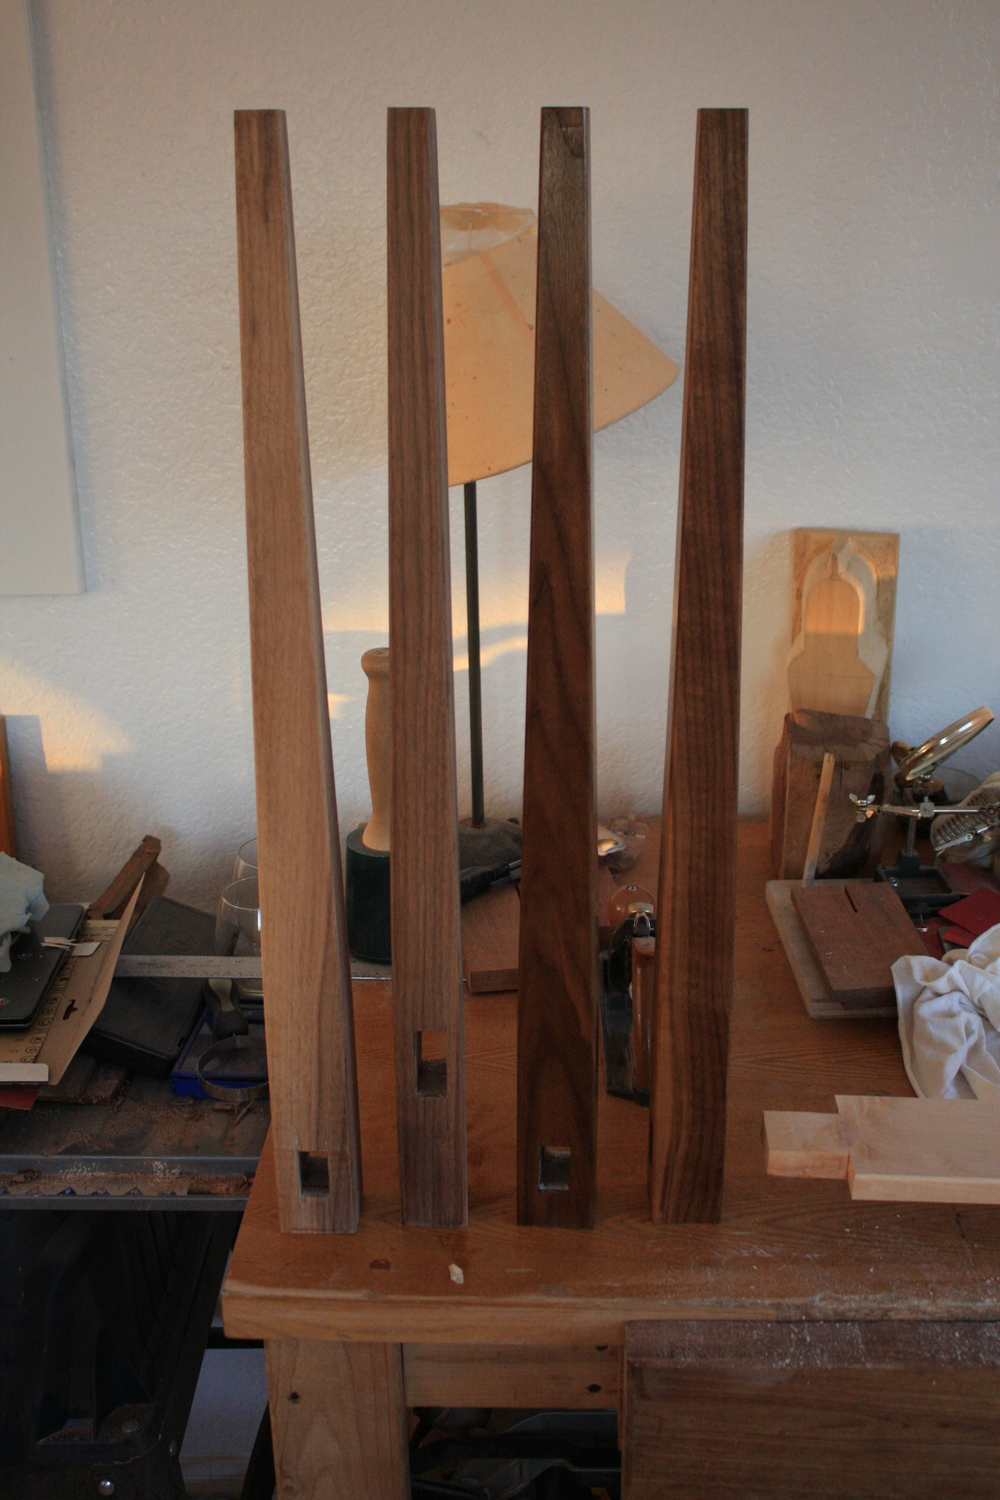 Prepped legs on the left, completely finished legs on the right.